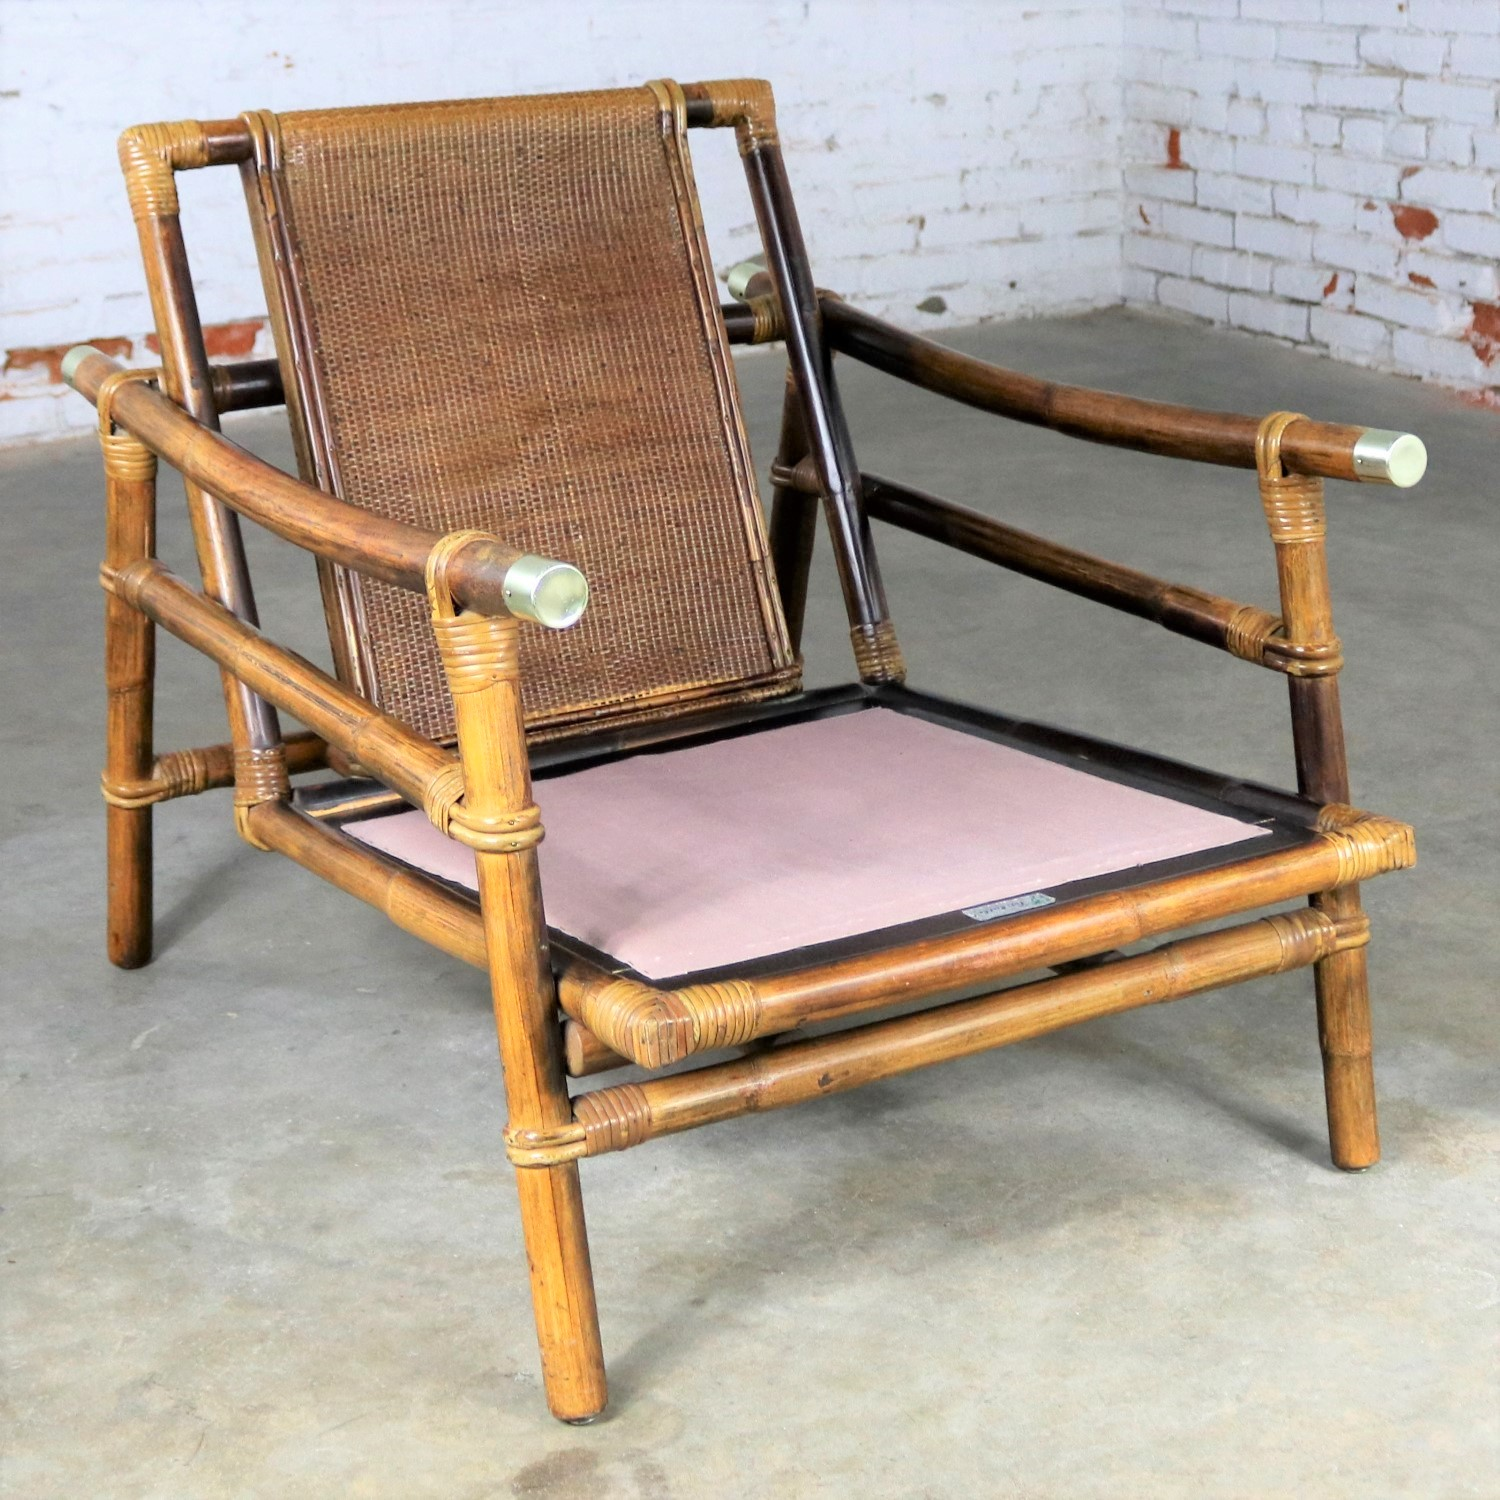 Merveilleux Vintage Ficks Reed Rattan Lounge Club Chair With Brass Accents By John  Wisner Campaign Style